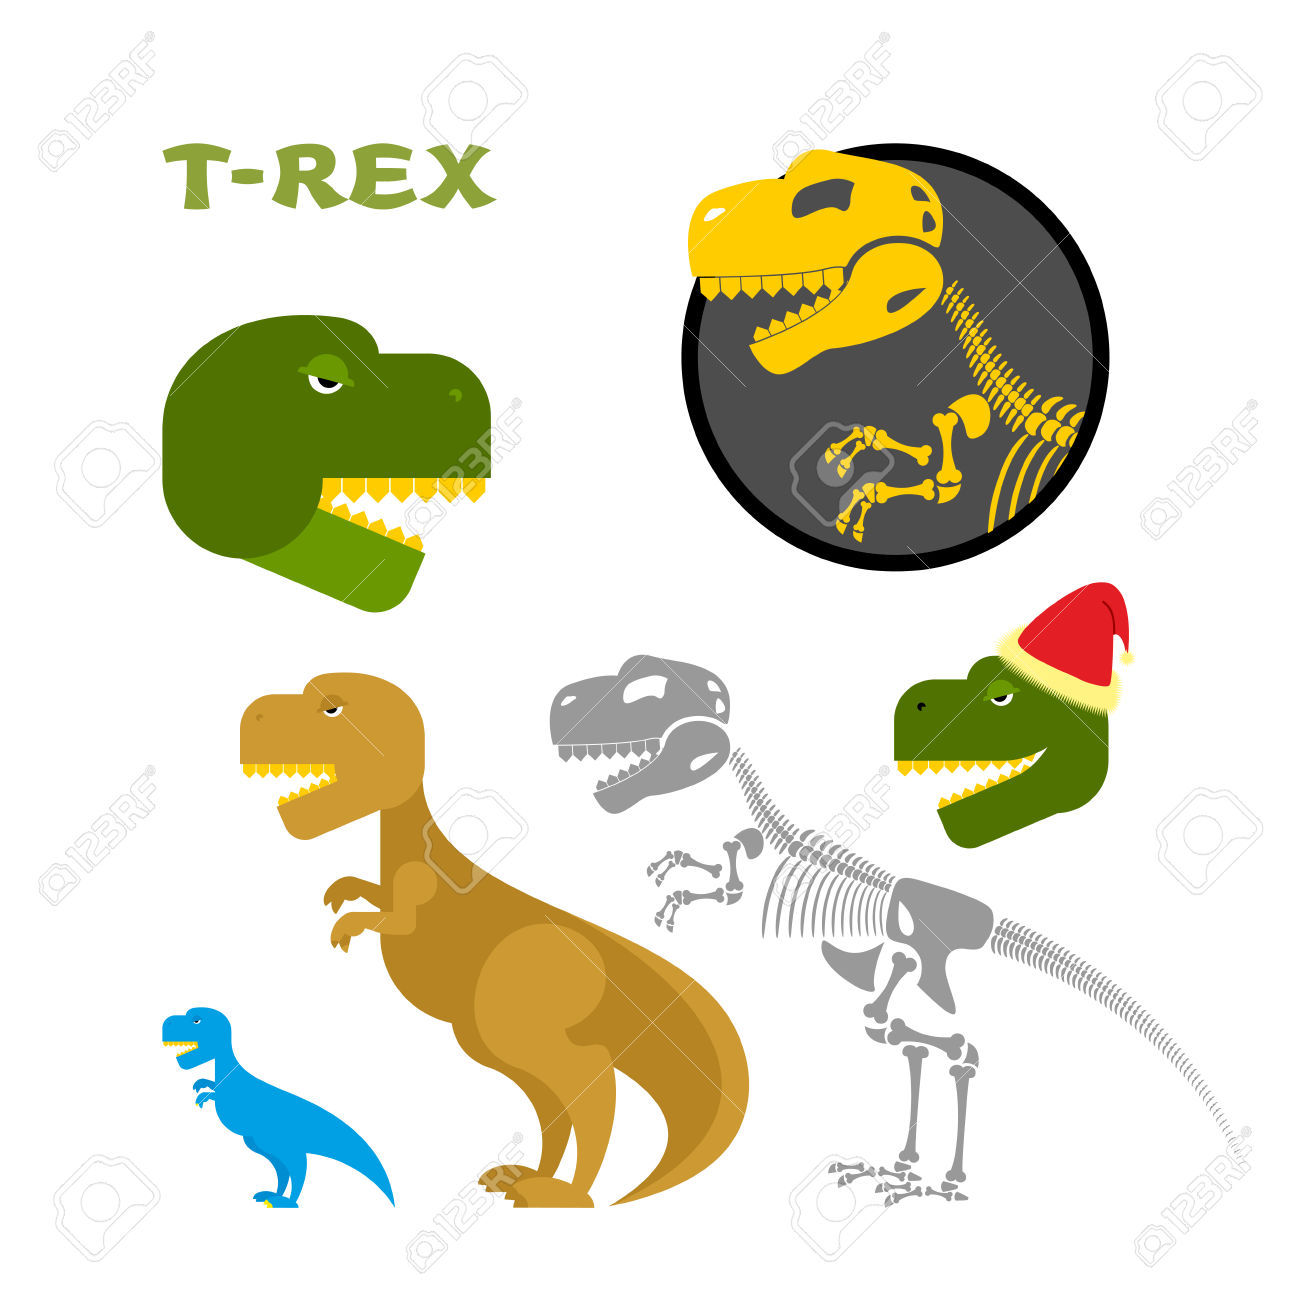 Fossil Toy On White Background Images & Stock Pictures. 102.